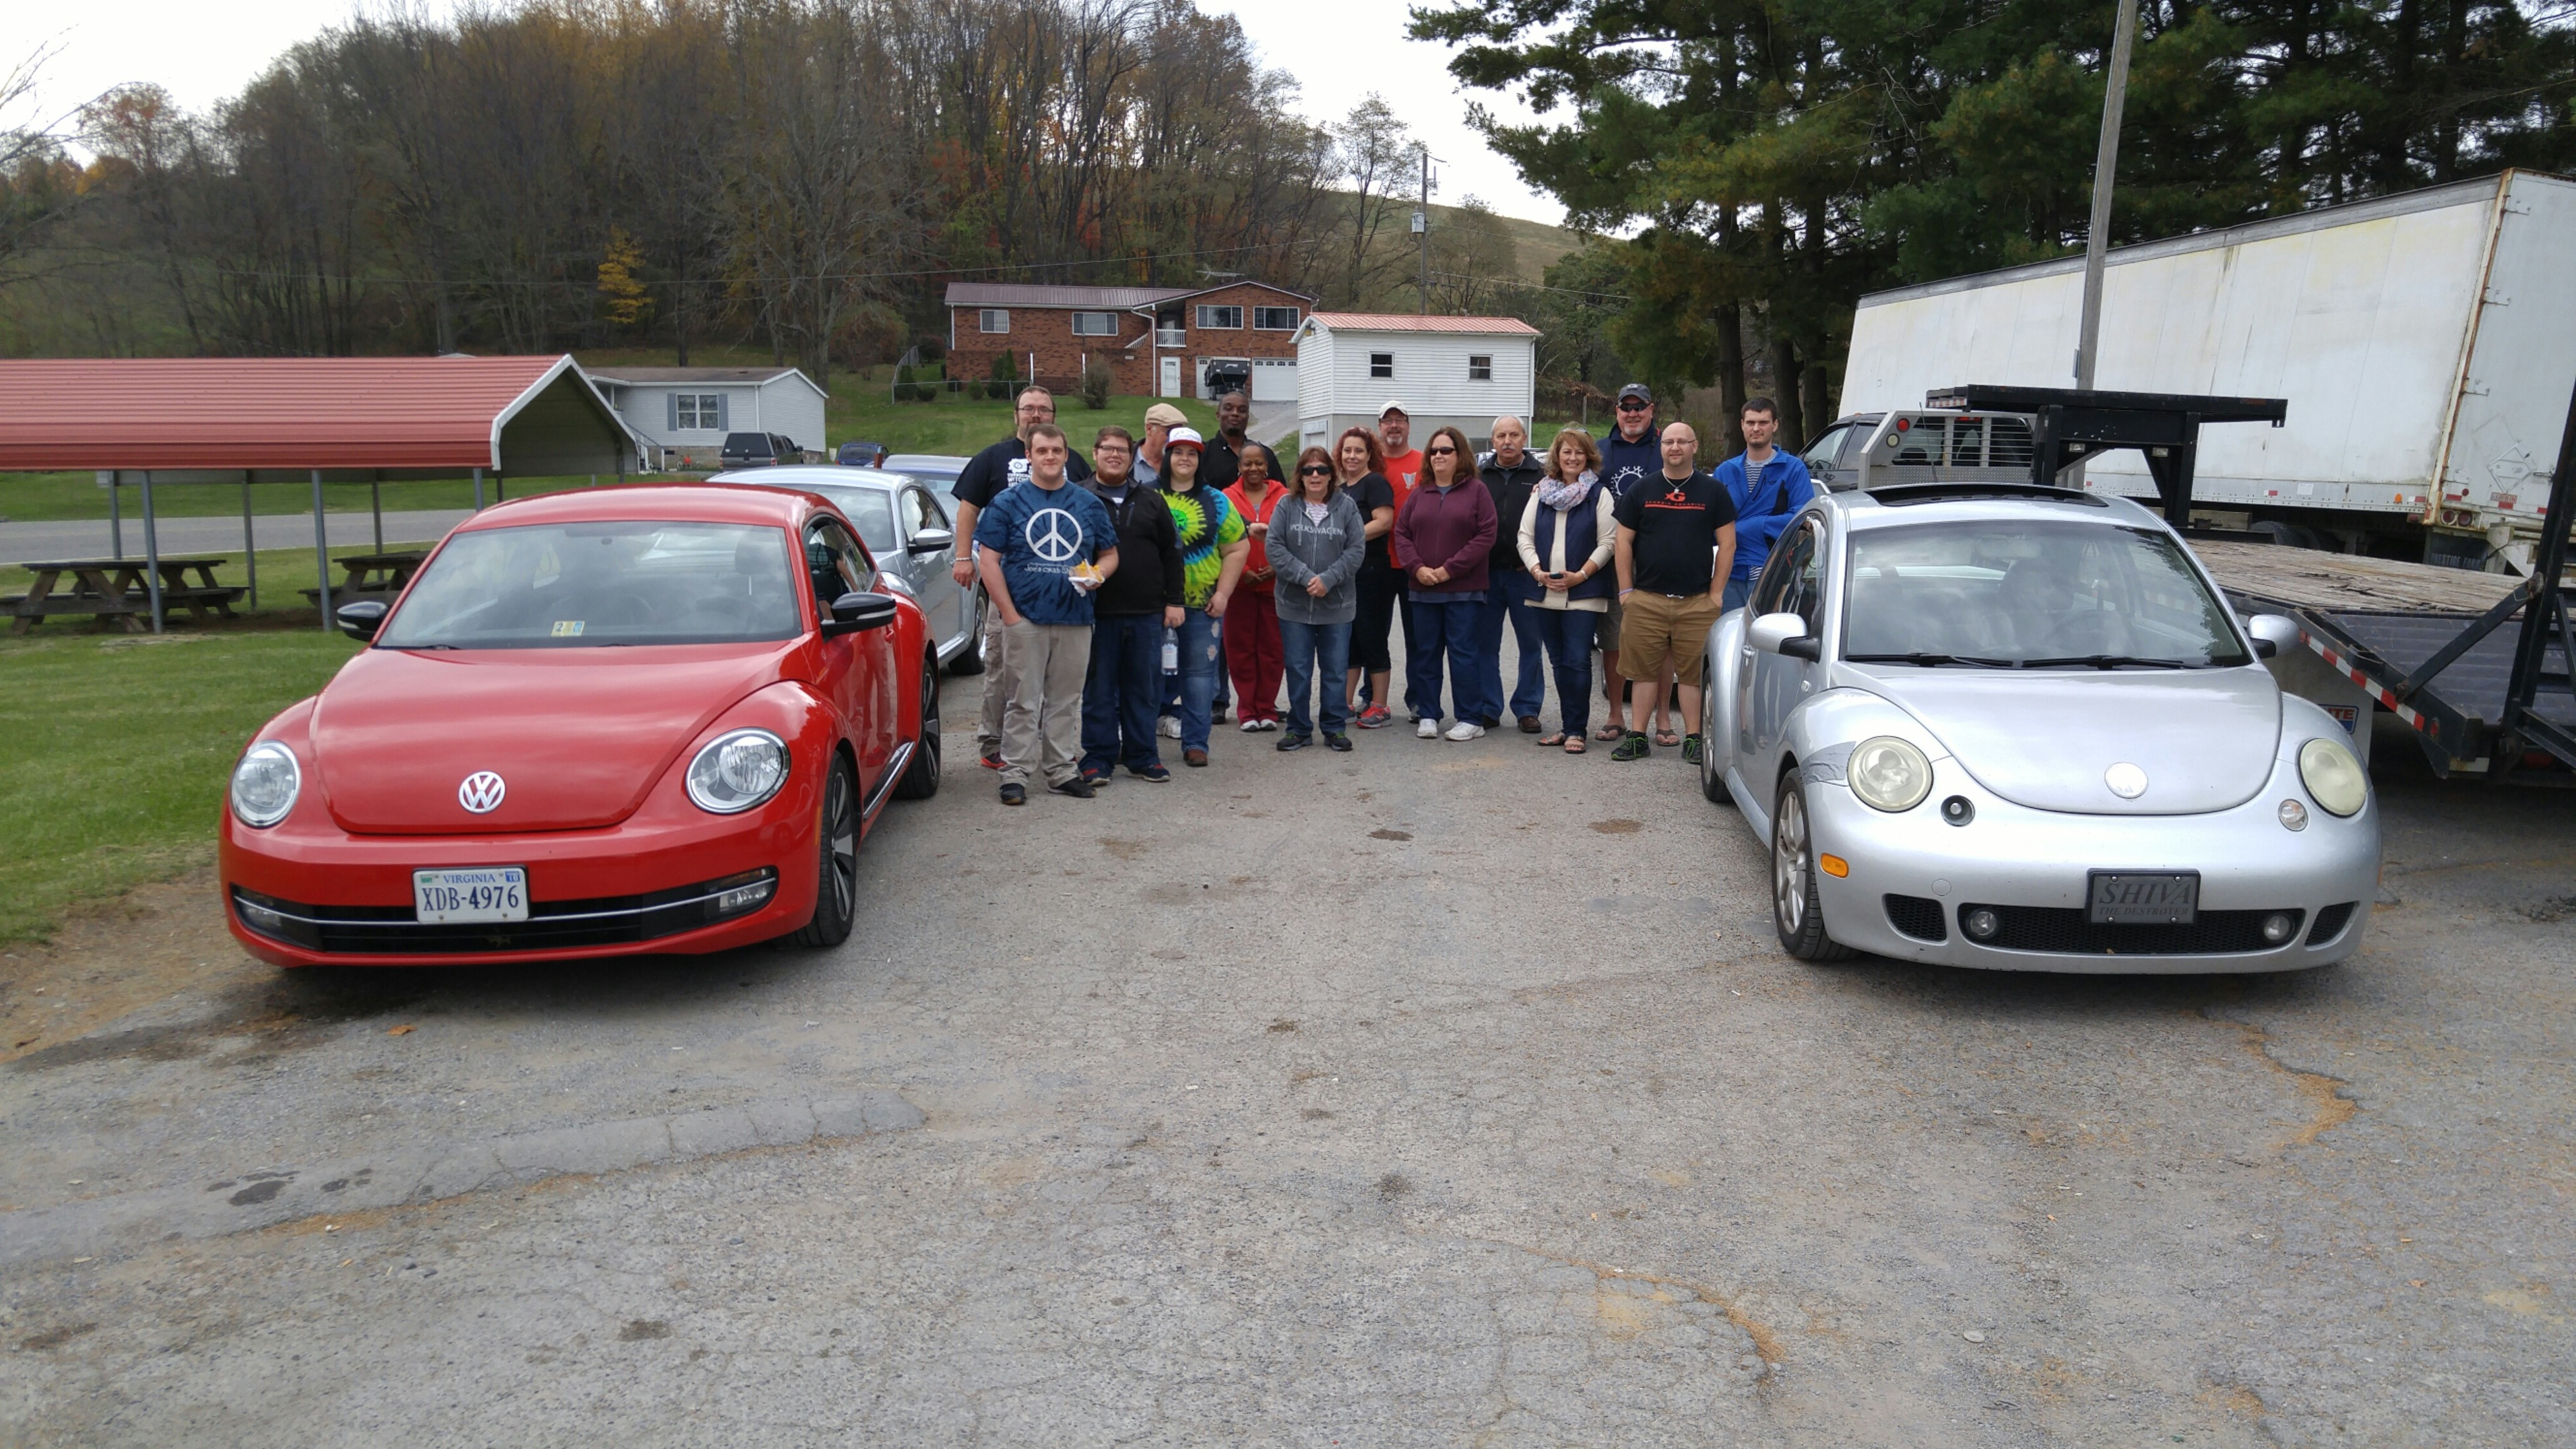 Annual Back of the Dragon touring group from several states